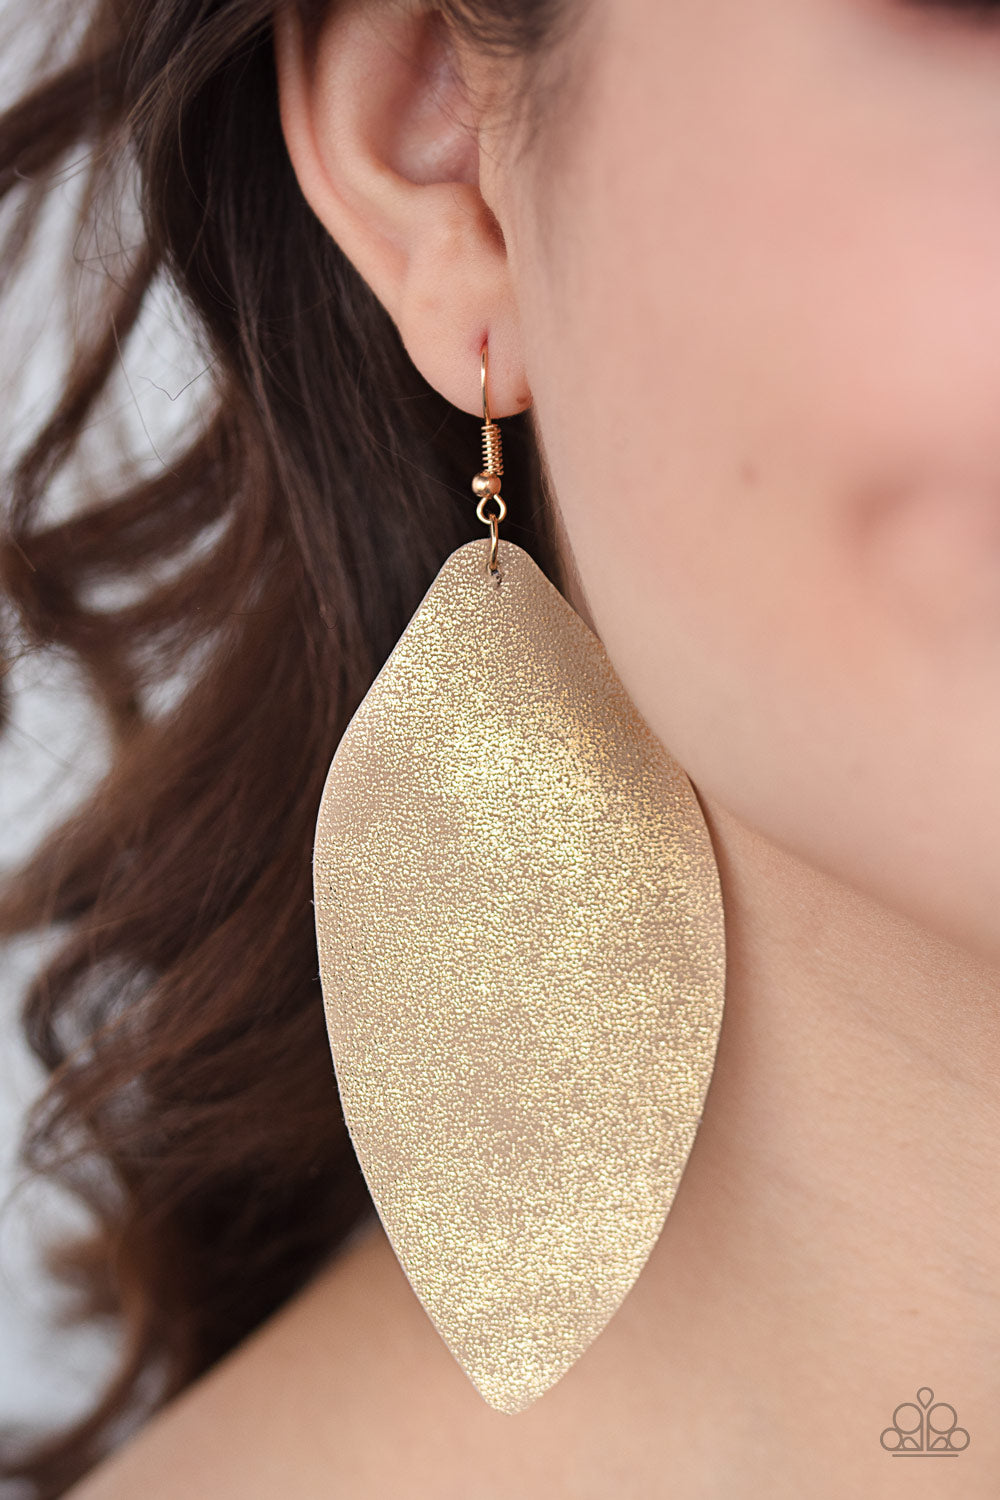 Paparazzi Accessories Serenely Smattered - Gold Earrings - Lady T Accessories